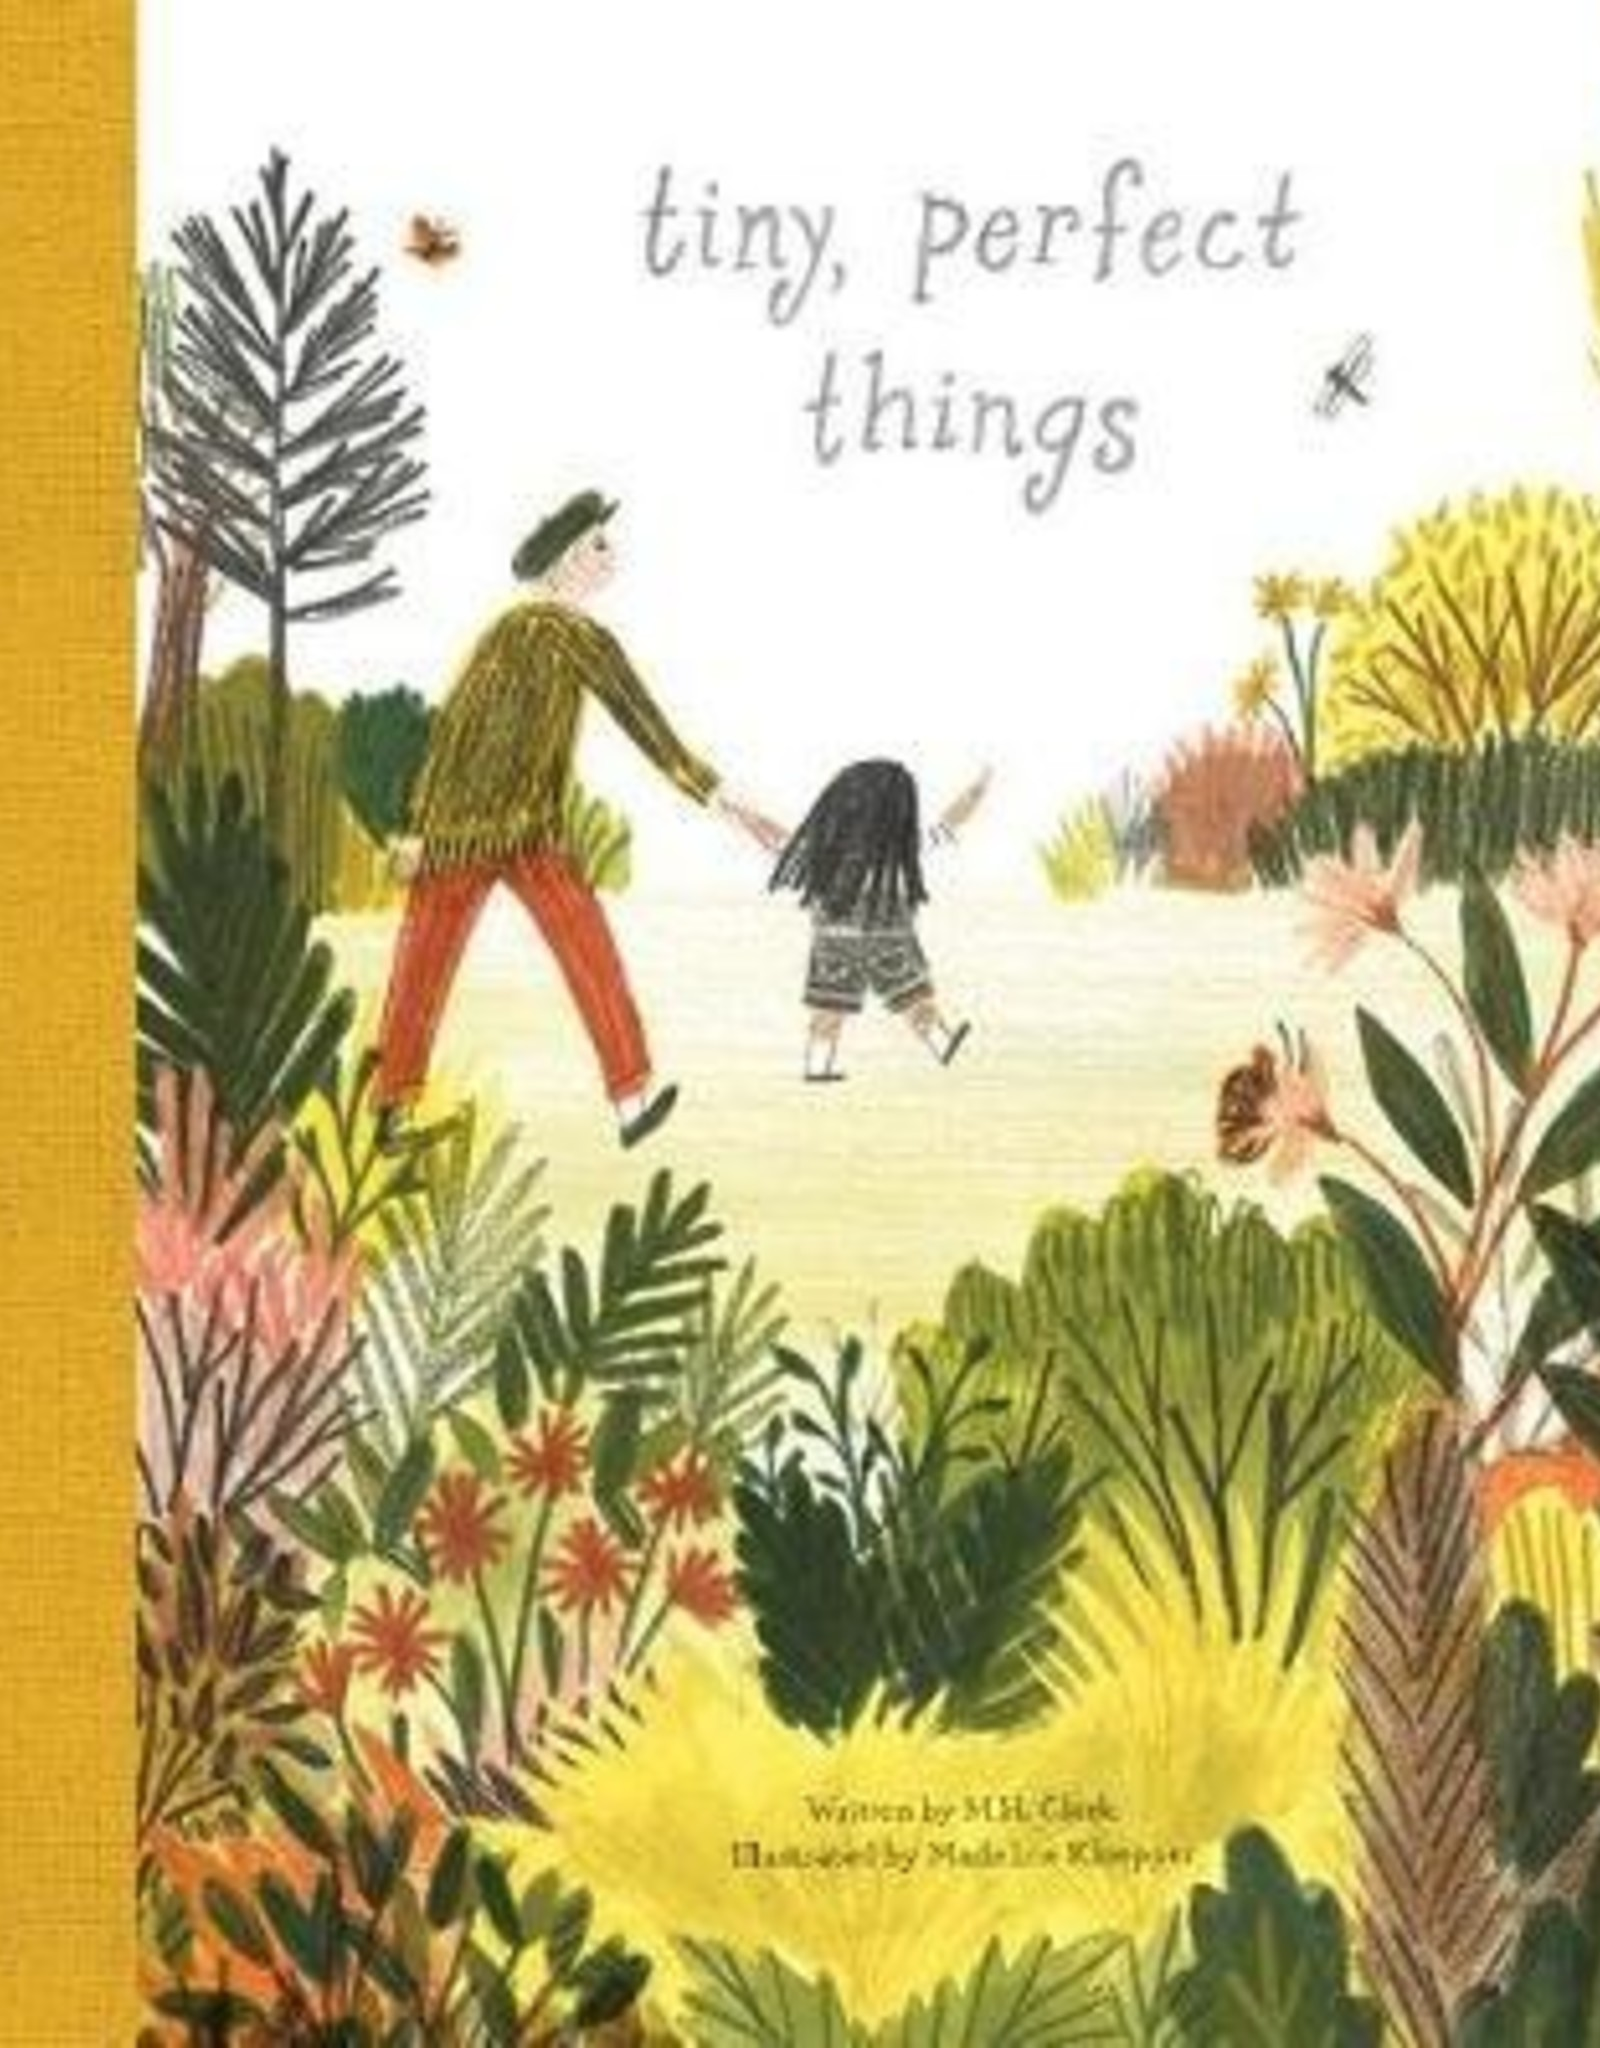 Tiny, Perfect Things - M.H. Clark